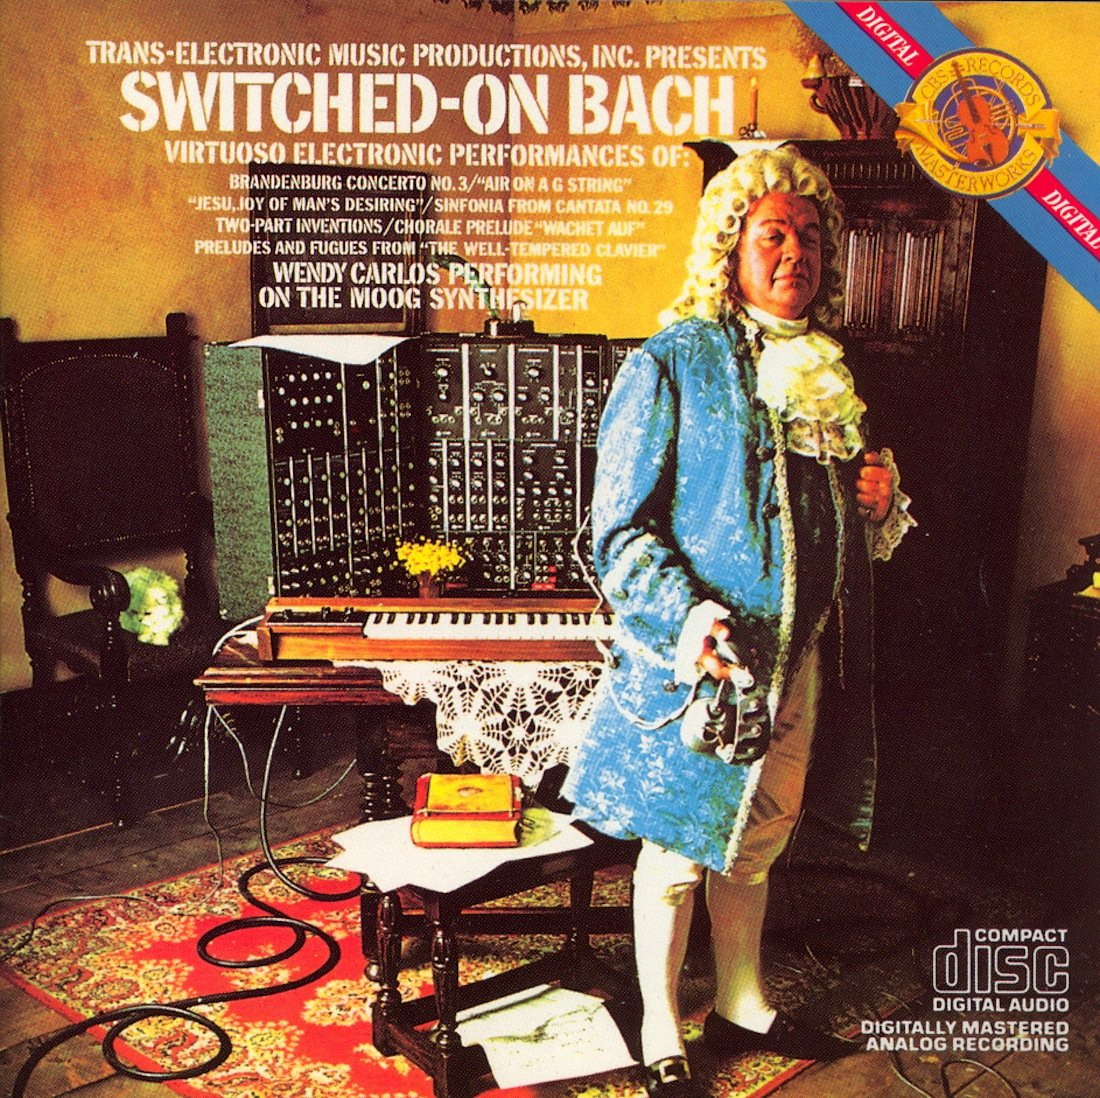 Switched-On Bach by CBS Masterworks